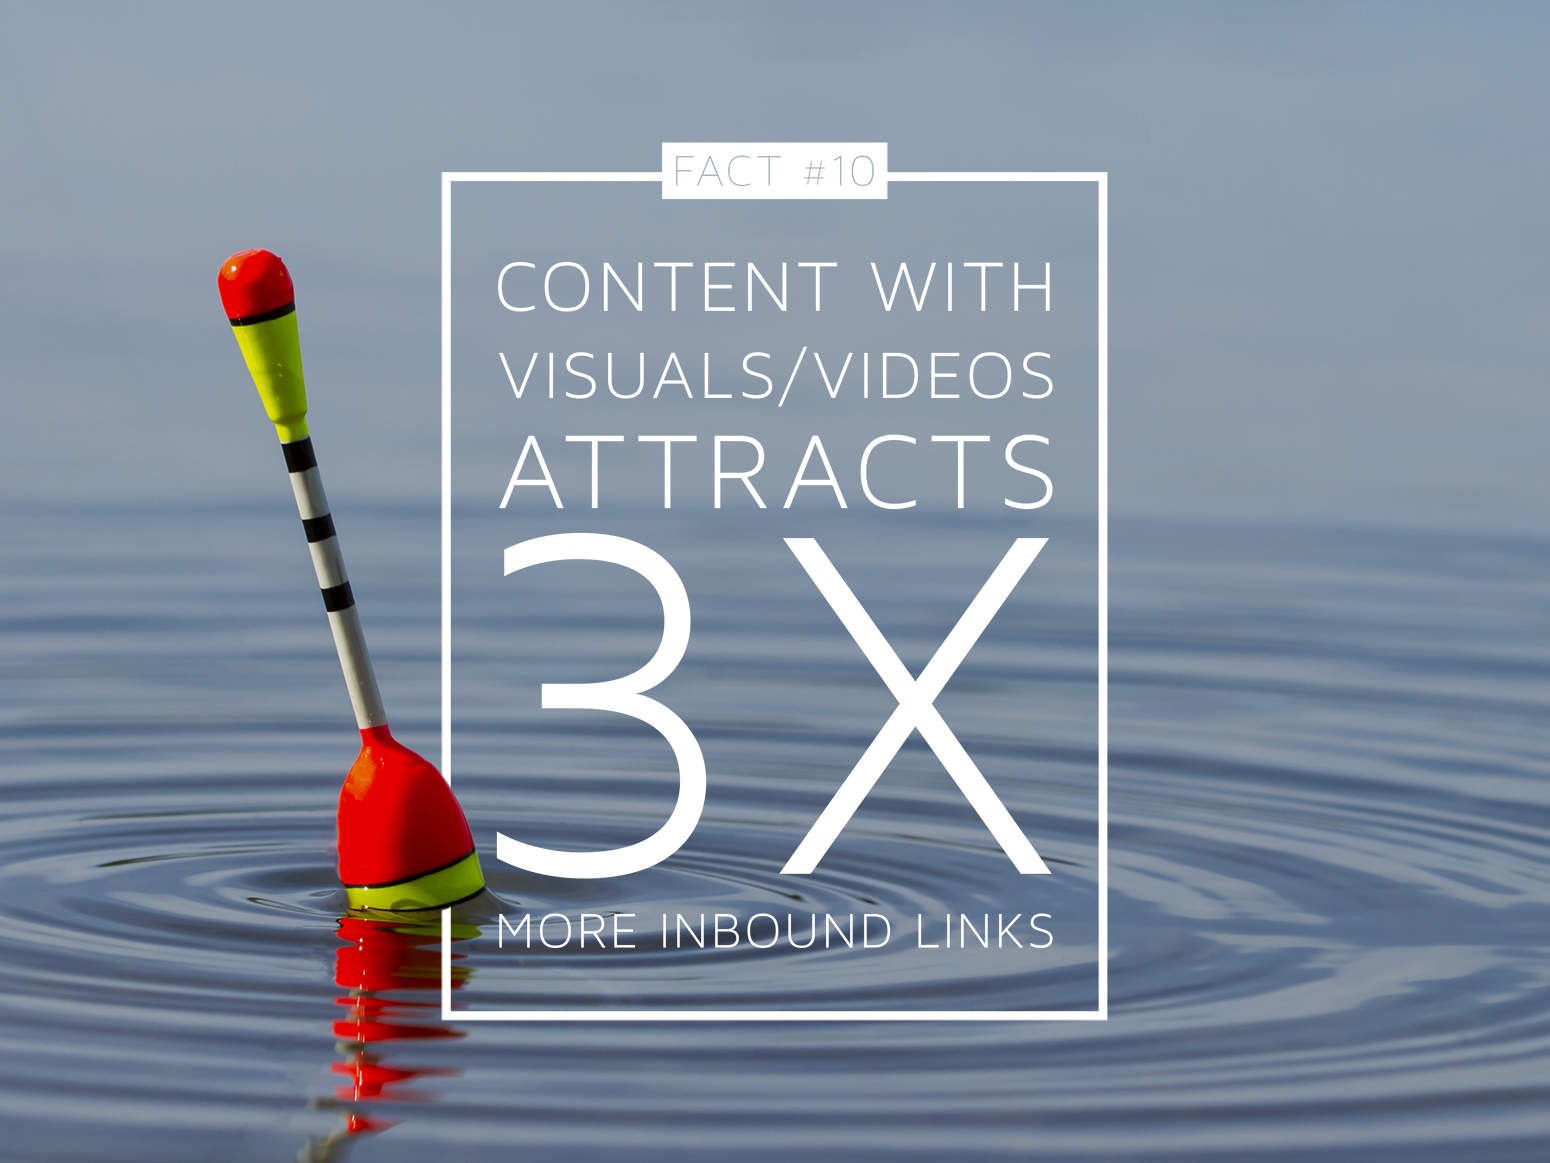 10-content-with-visuals-or-video-attracts-3x-more-inbound-links